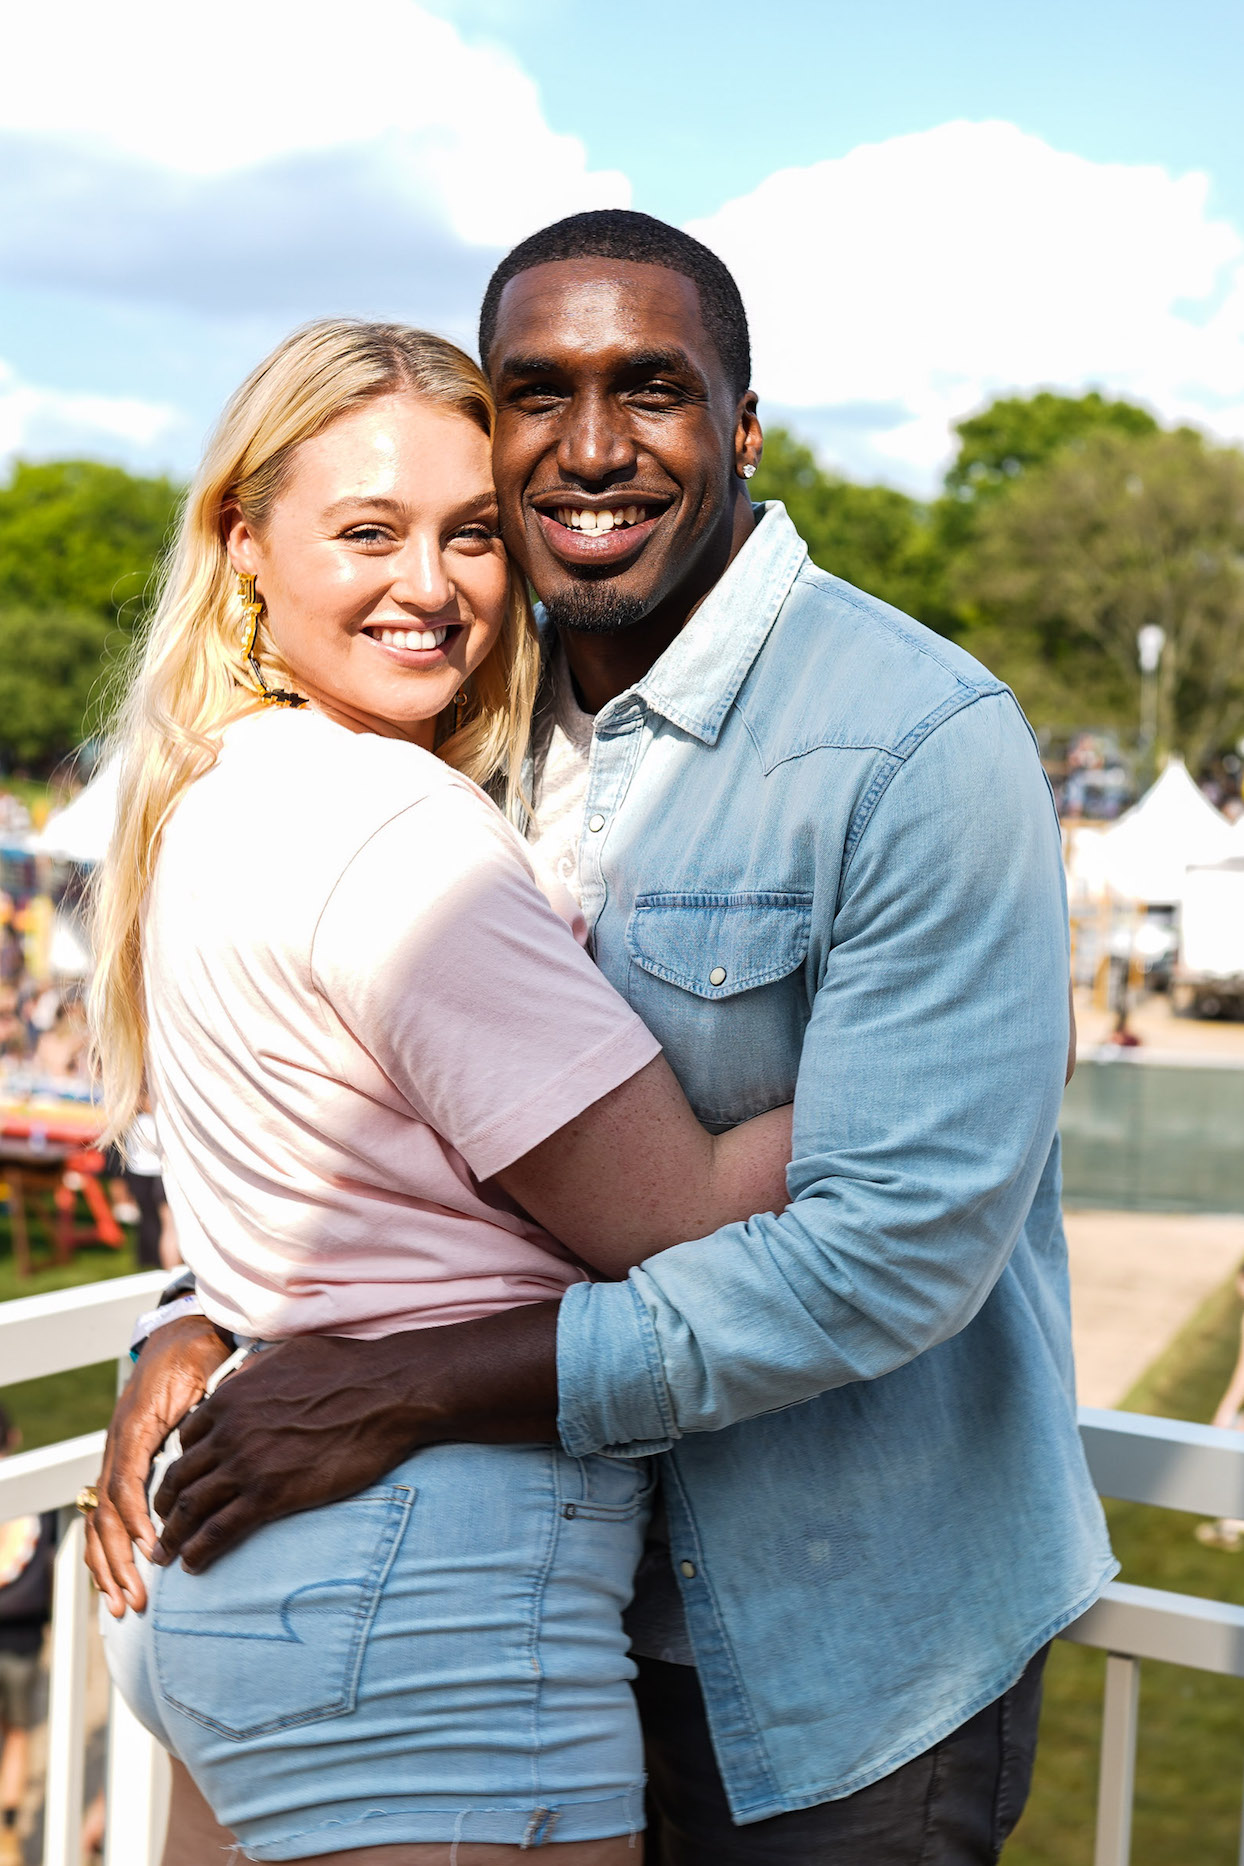 Iskra Lawrence and Philip Payne during the American Eagle At NYC's Governors Ball 2019 at Randall's Island on May 31, 2019 in New York City